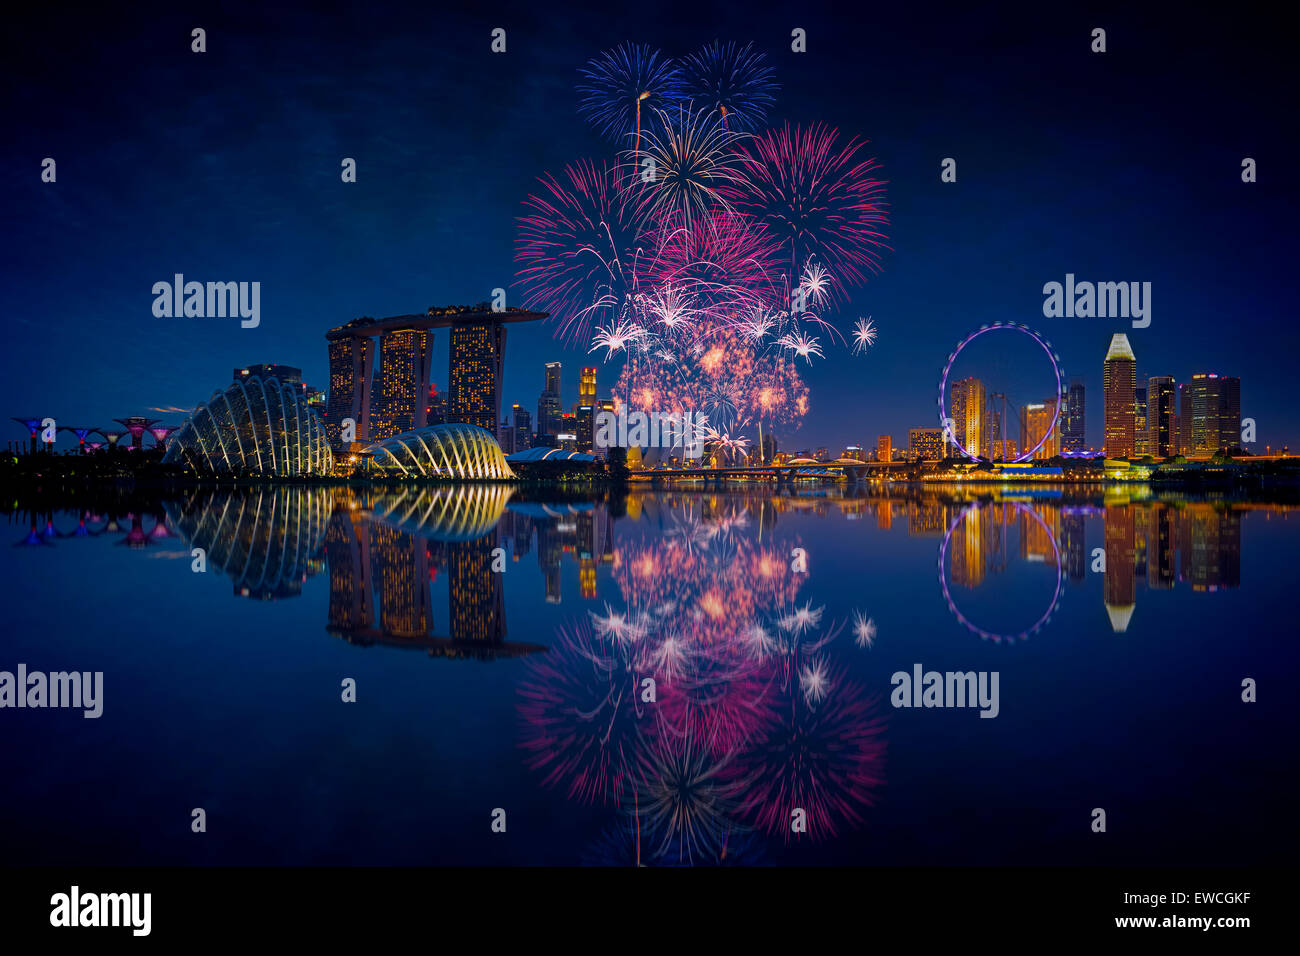 D'artifice de Singapour Photo Stock